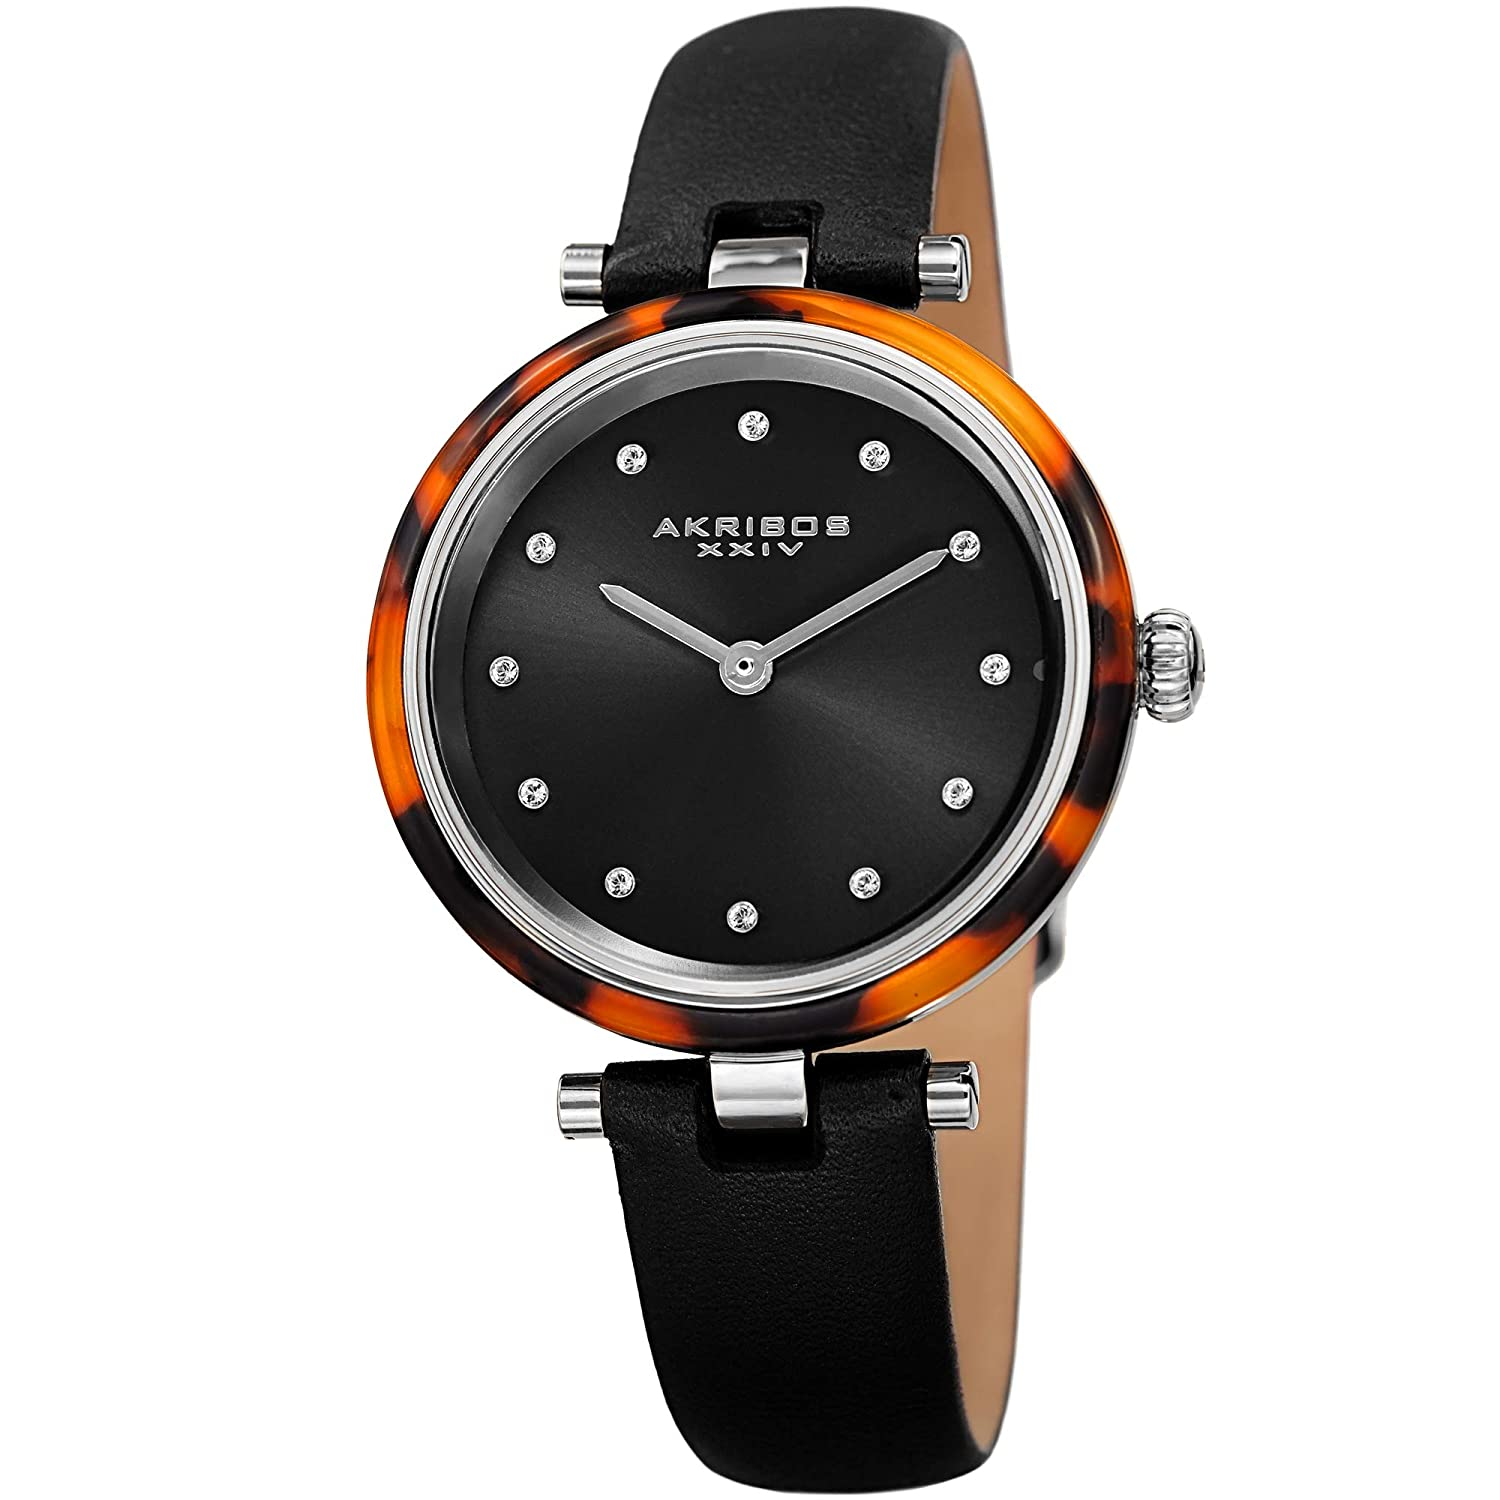 Akribos Swarovski Crystal Markers Watch, Tortoise Shell Bezel, Sunray Dial, Quartz Movement, Comfortable Designer Women s Leather Watch – AK1052